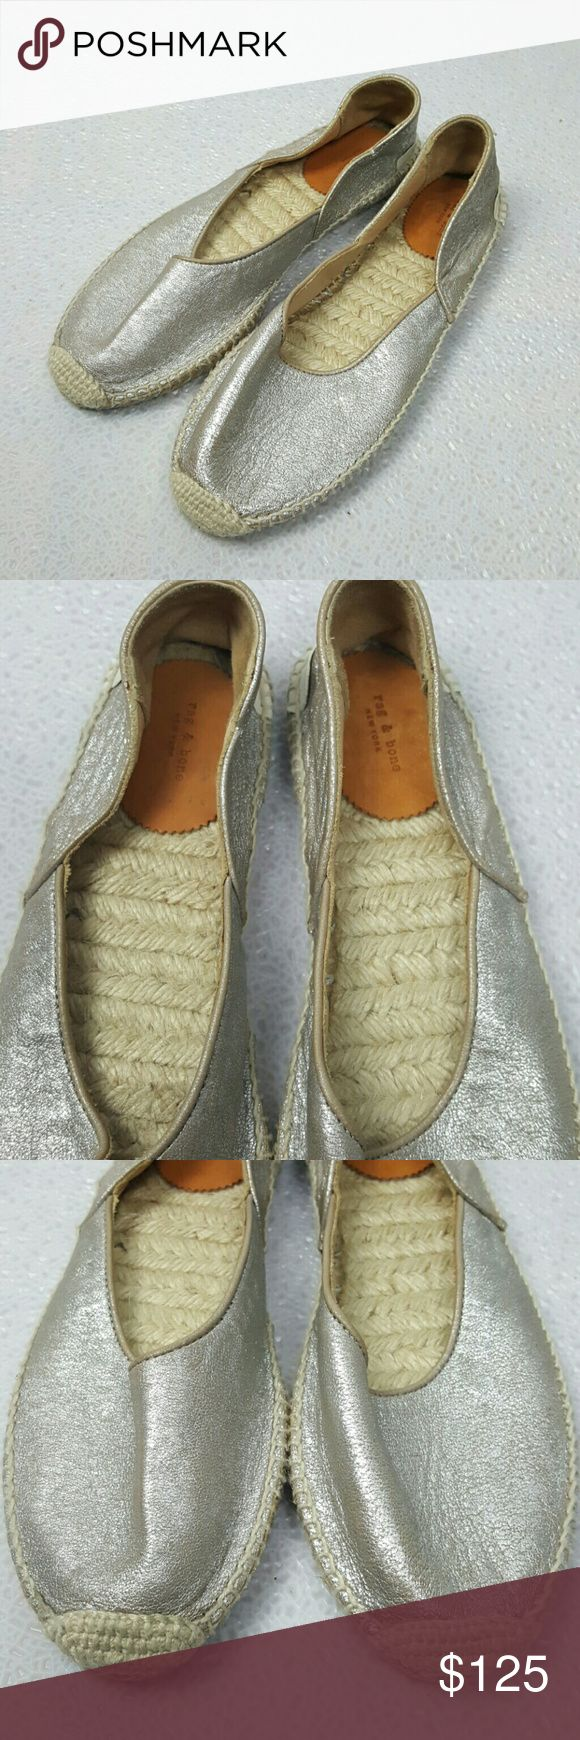 Rag & Bone gold metallic espadrille flats New without box  Made in Spain rag & bone Shoes Flats & Loafers